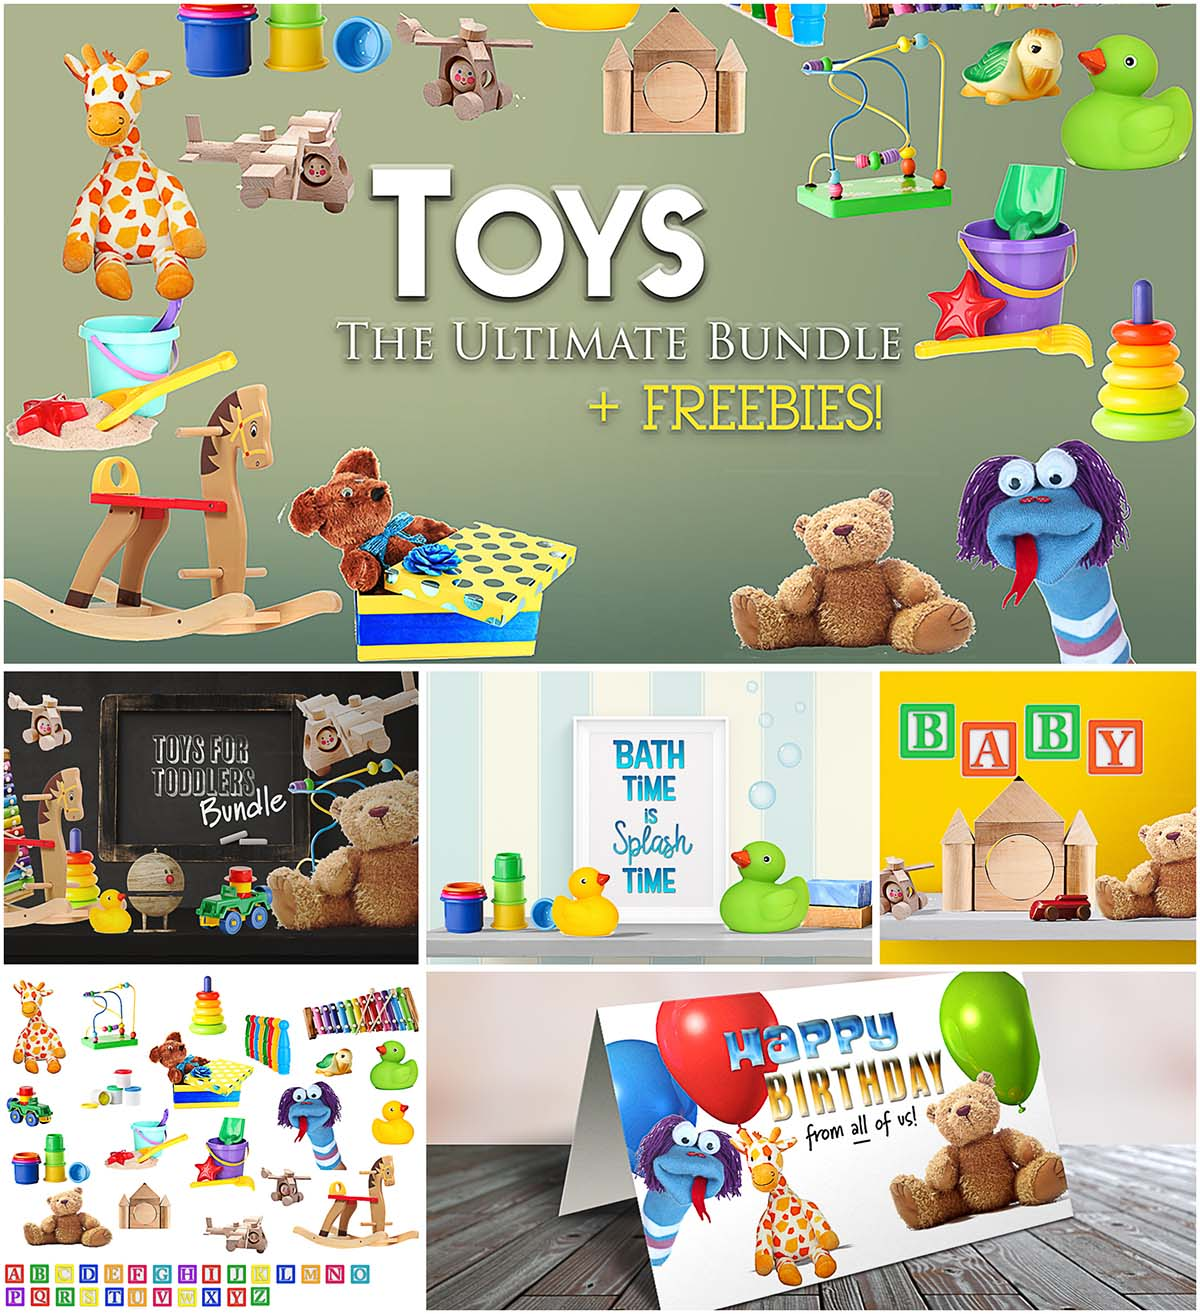 Toys mock up scene creator set